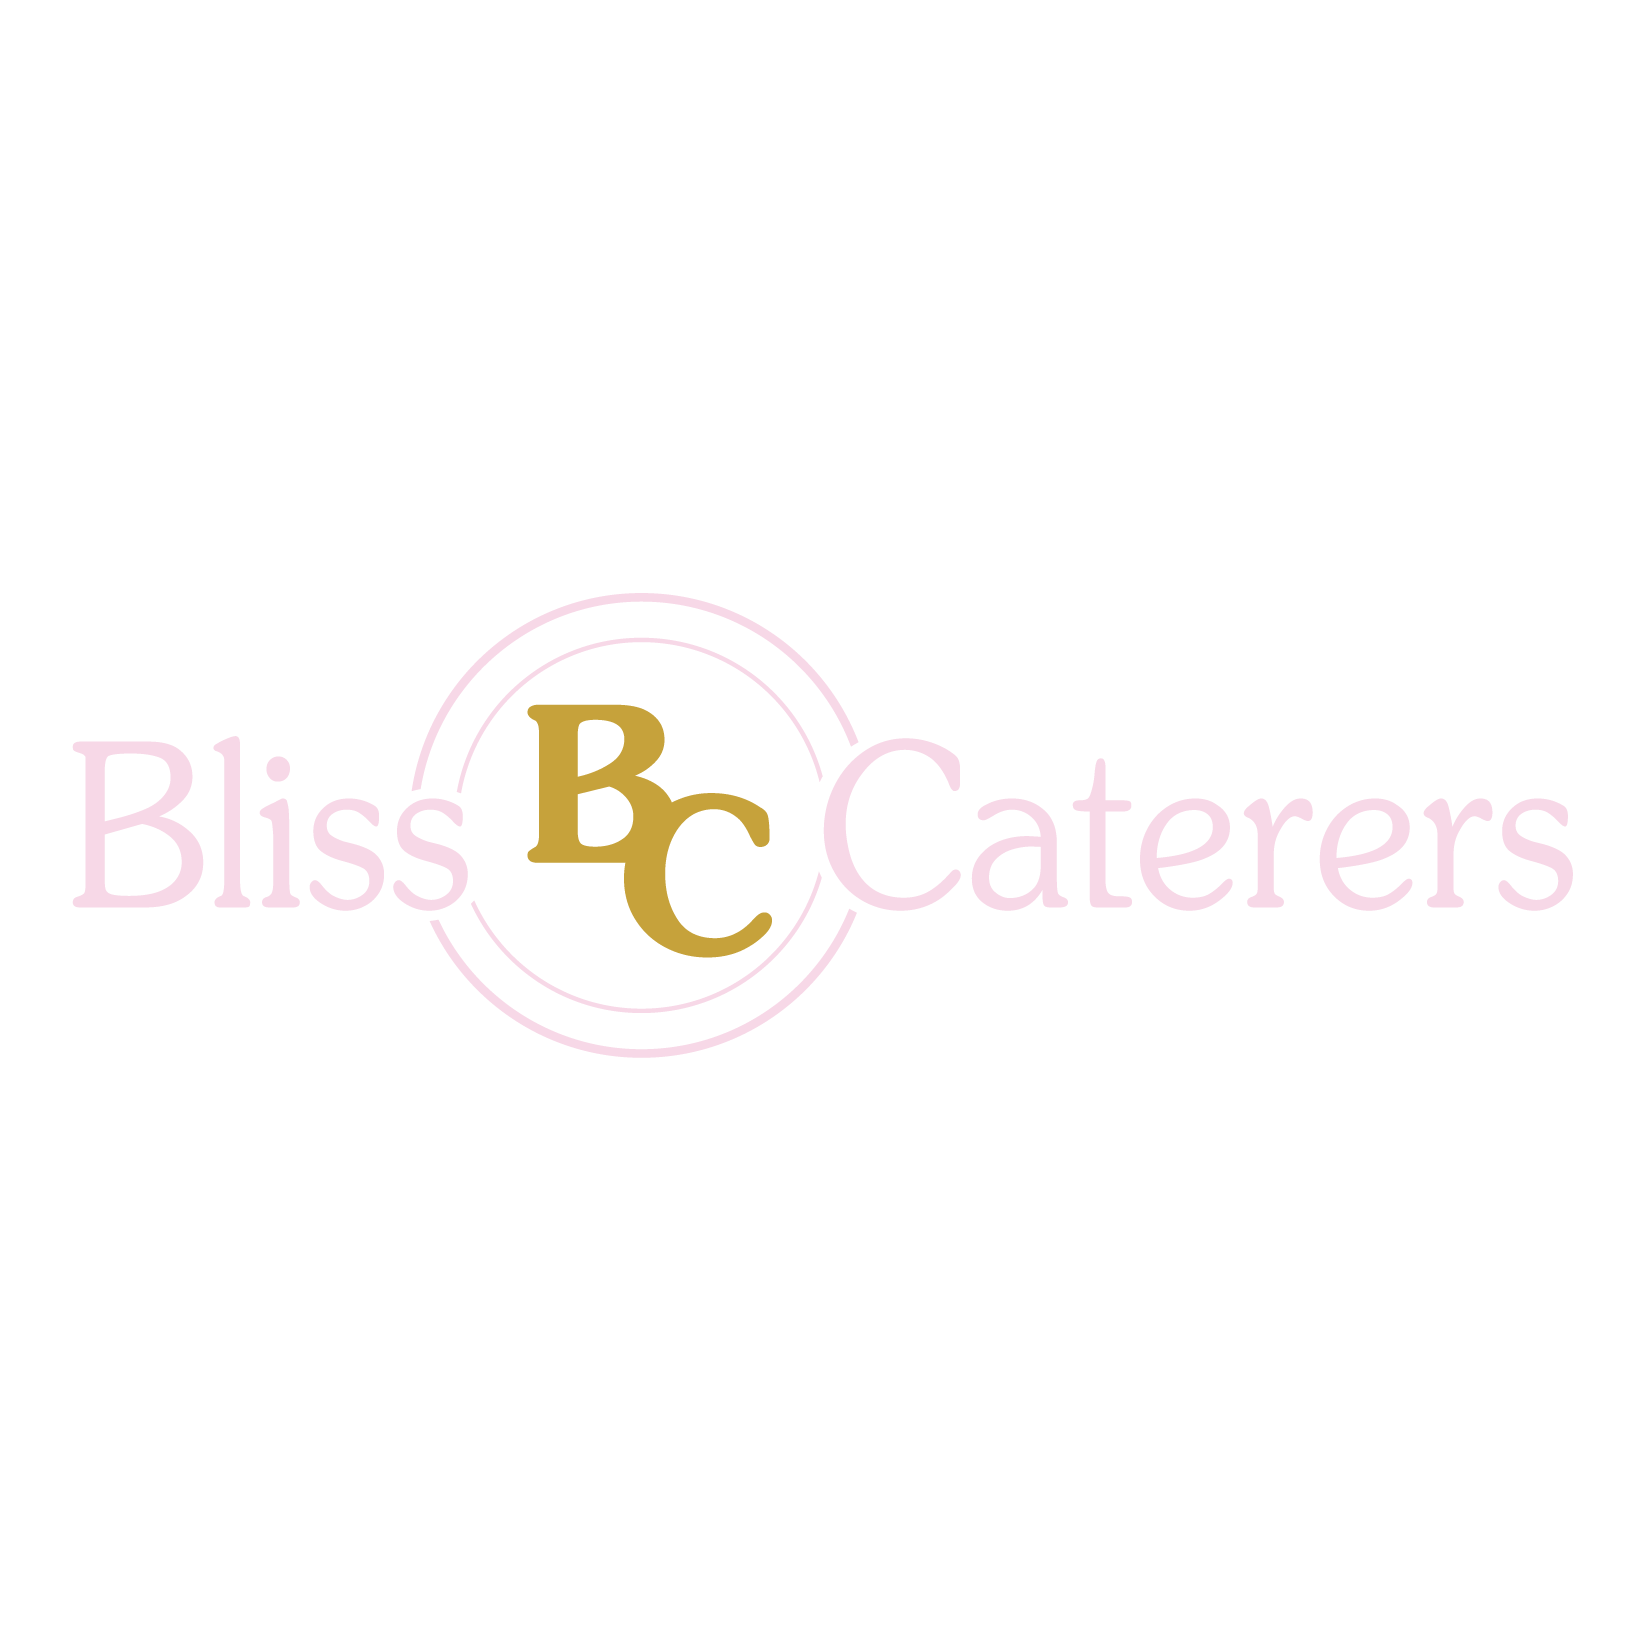 Bliss Caterers - Kennebunk, ME 04043 - (207)318-9060 | ShowMeLocal.com